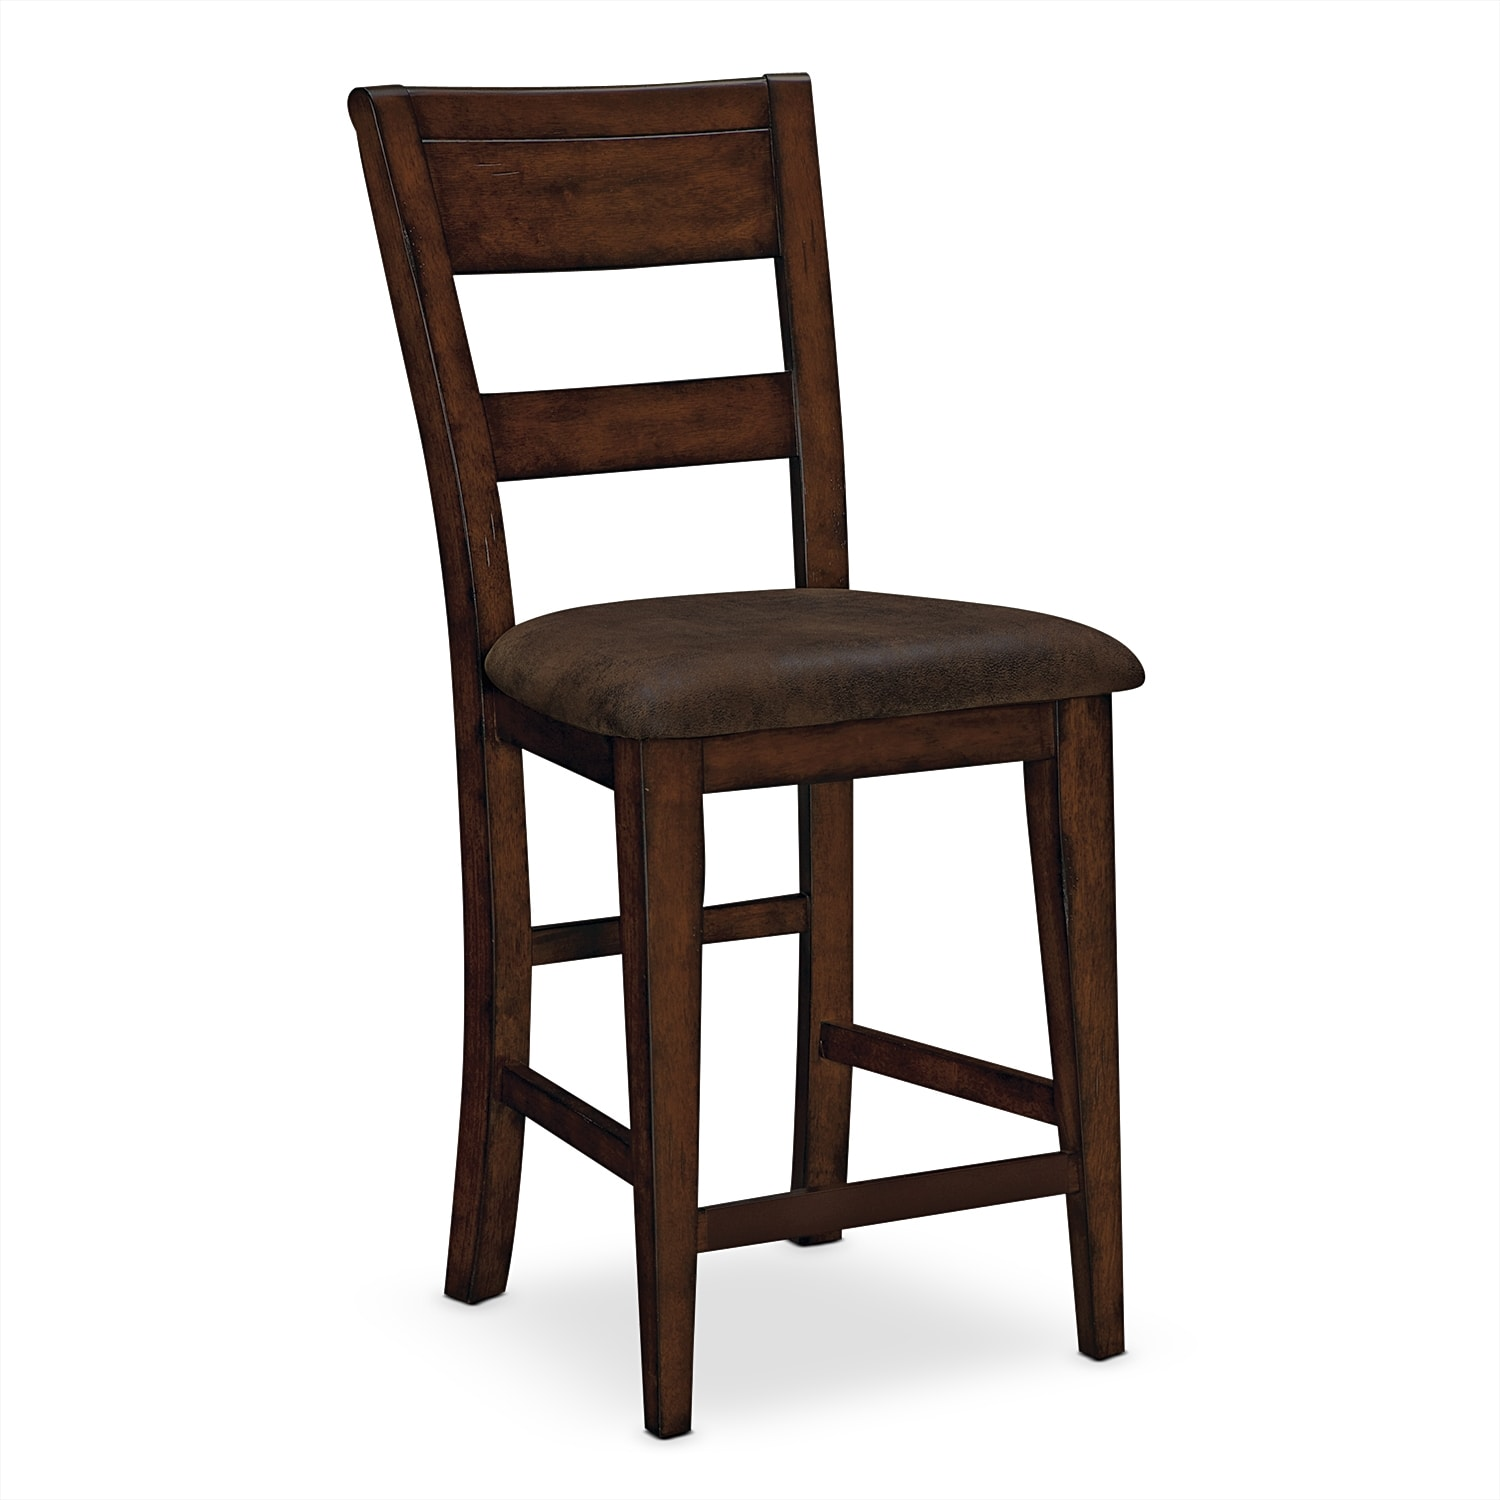 Everett Dining Room Counter Height Stool Value City Furniture